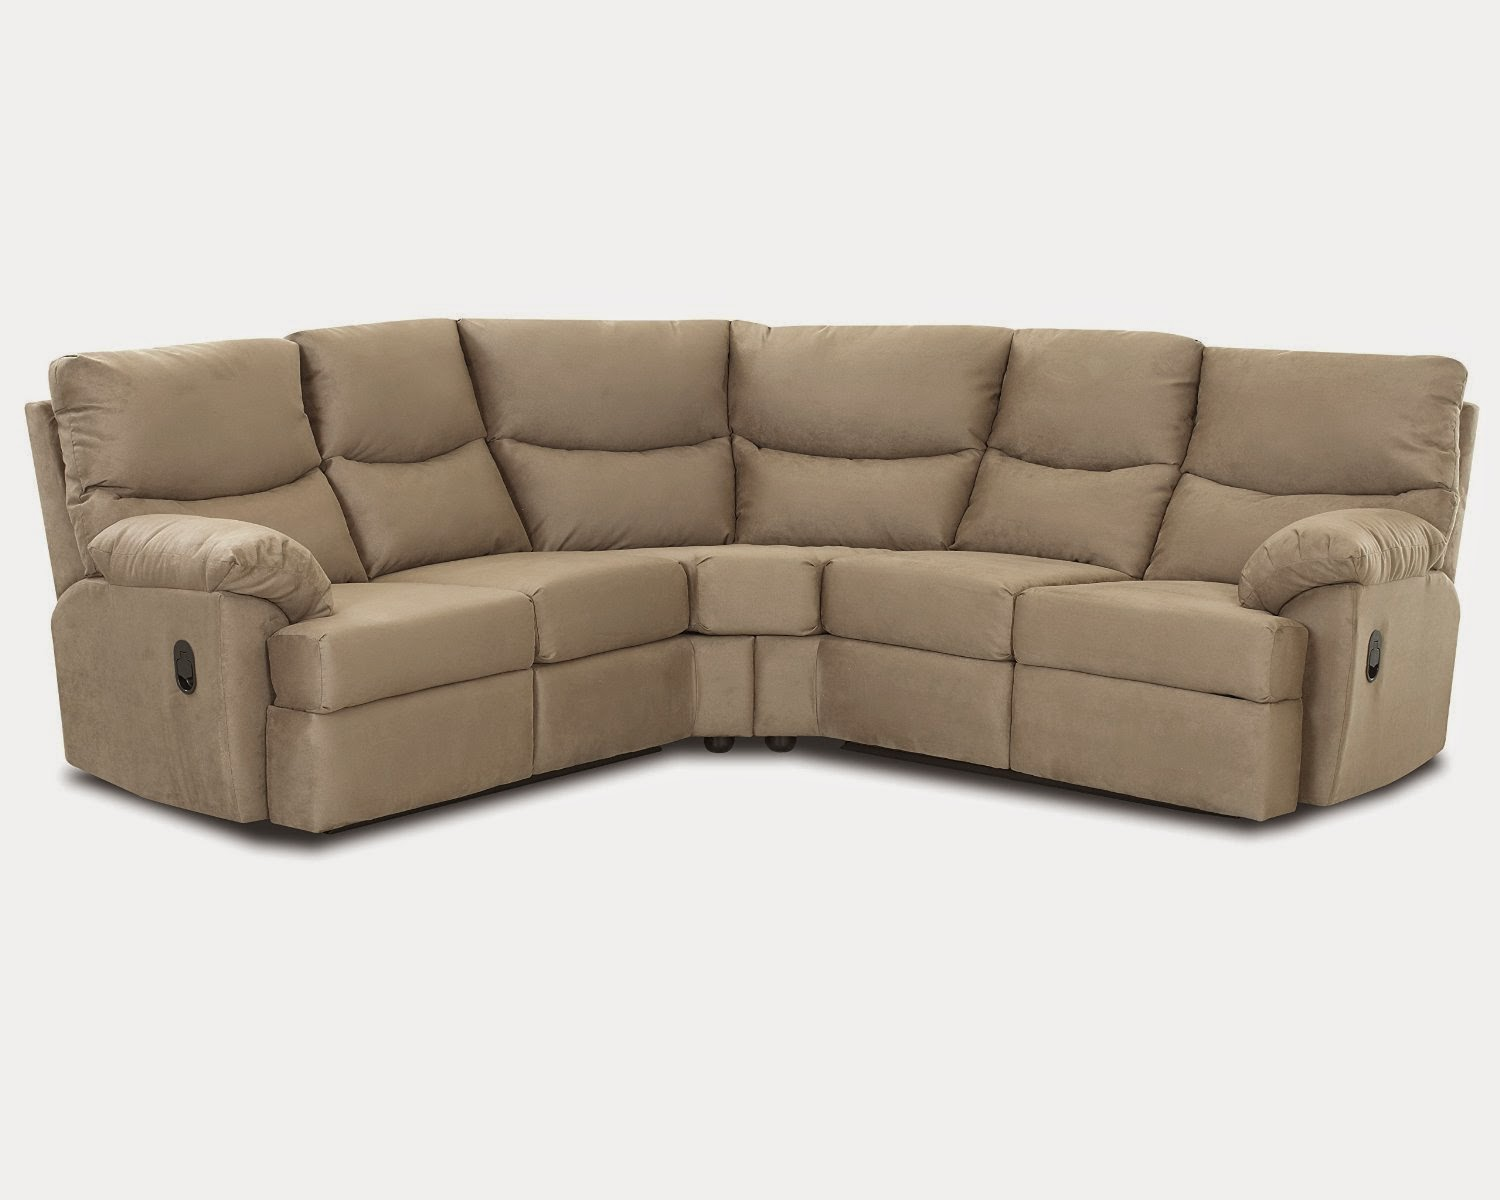 Cheap recliner sofas for sale april 2015 for Sofa couch for sale